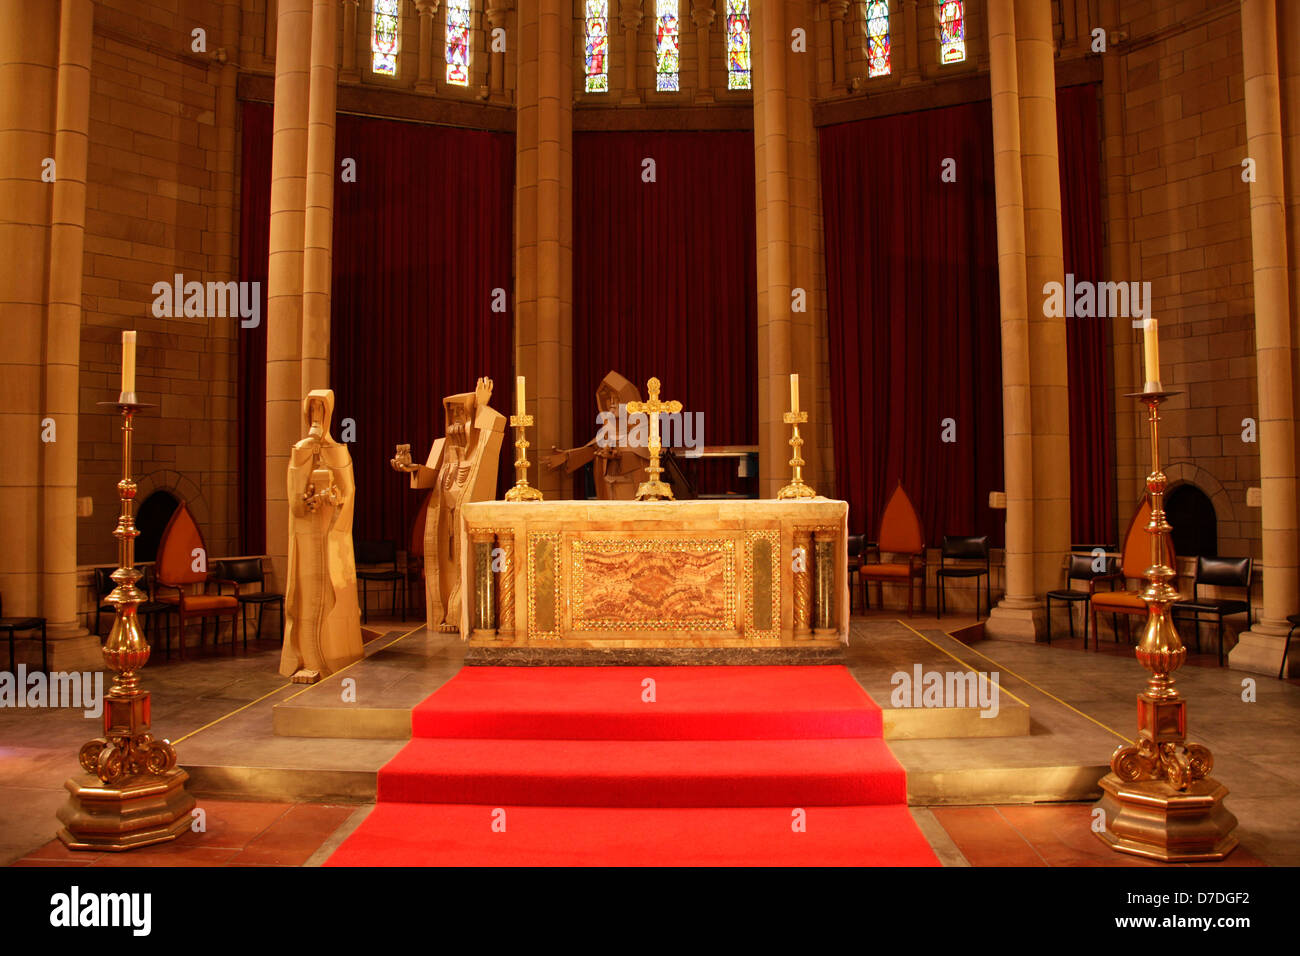 Altar inside St. John's Cathedral in Brisbane, Queensland, Australia - Stock Image